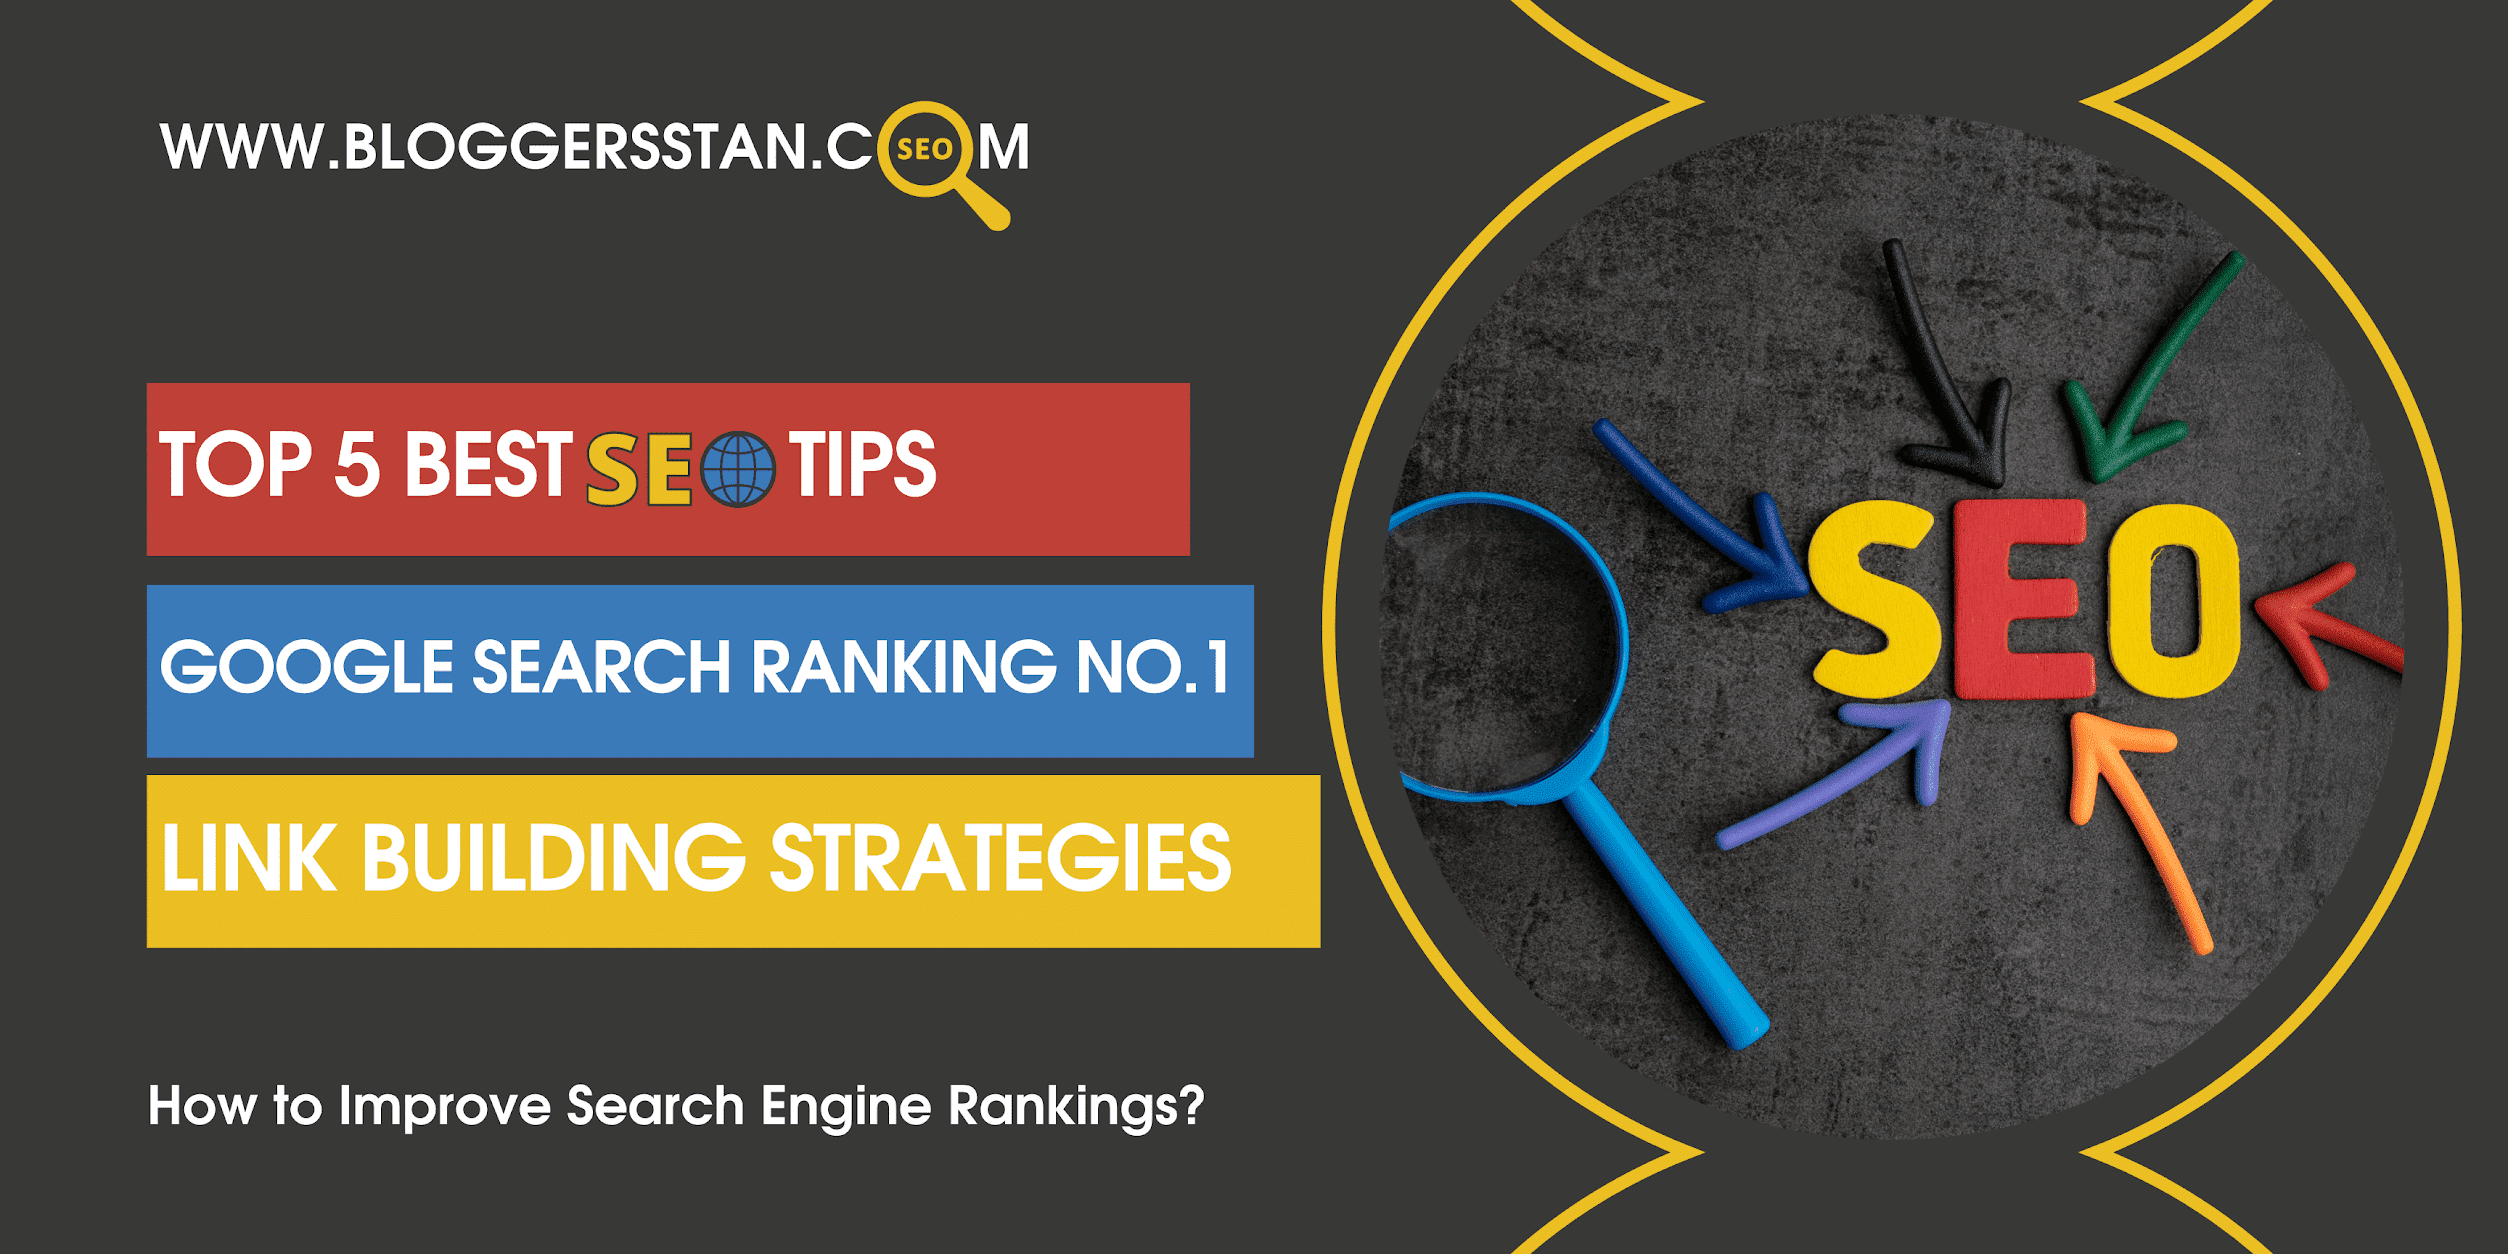 How to Improve Search Engine Rankings 2021: Top 5 Best SEO Tips